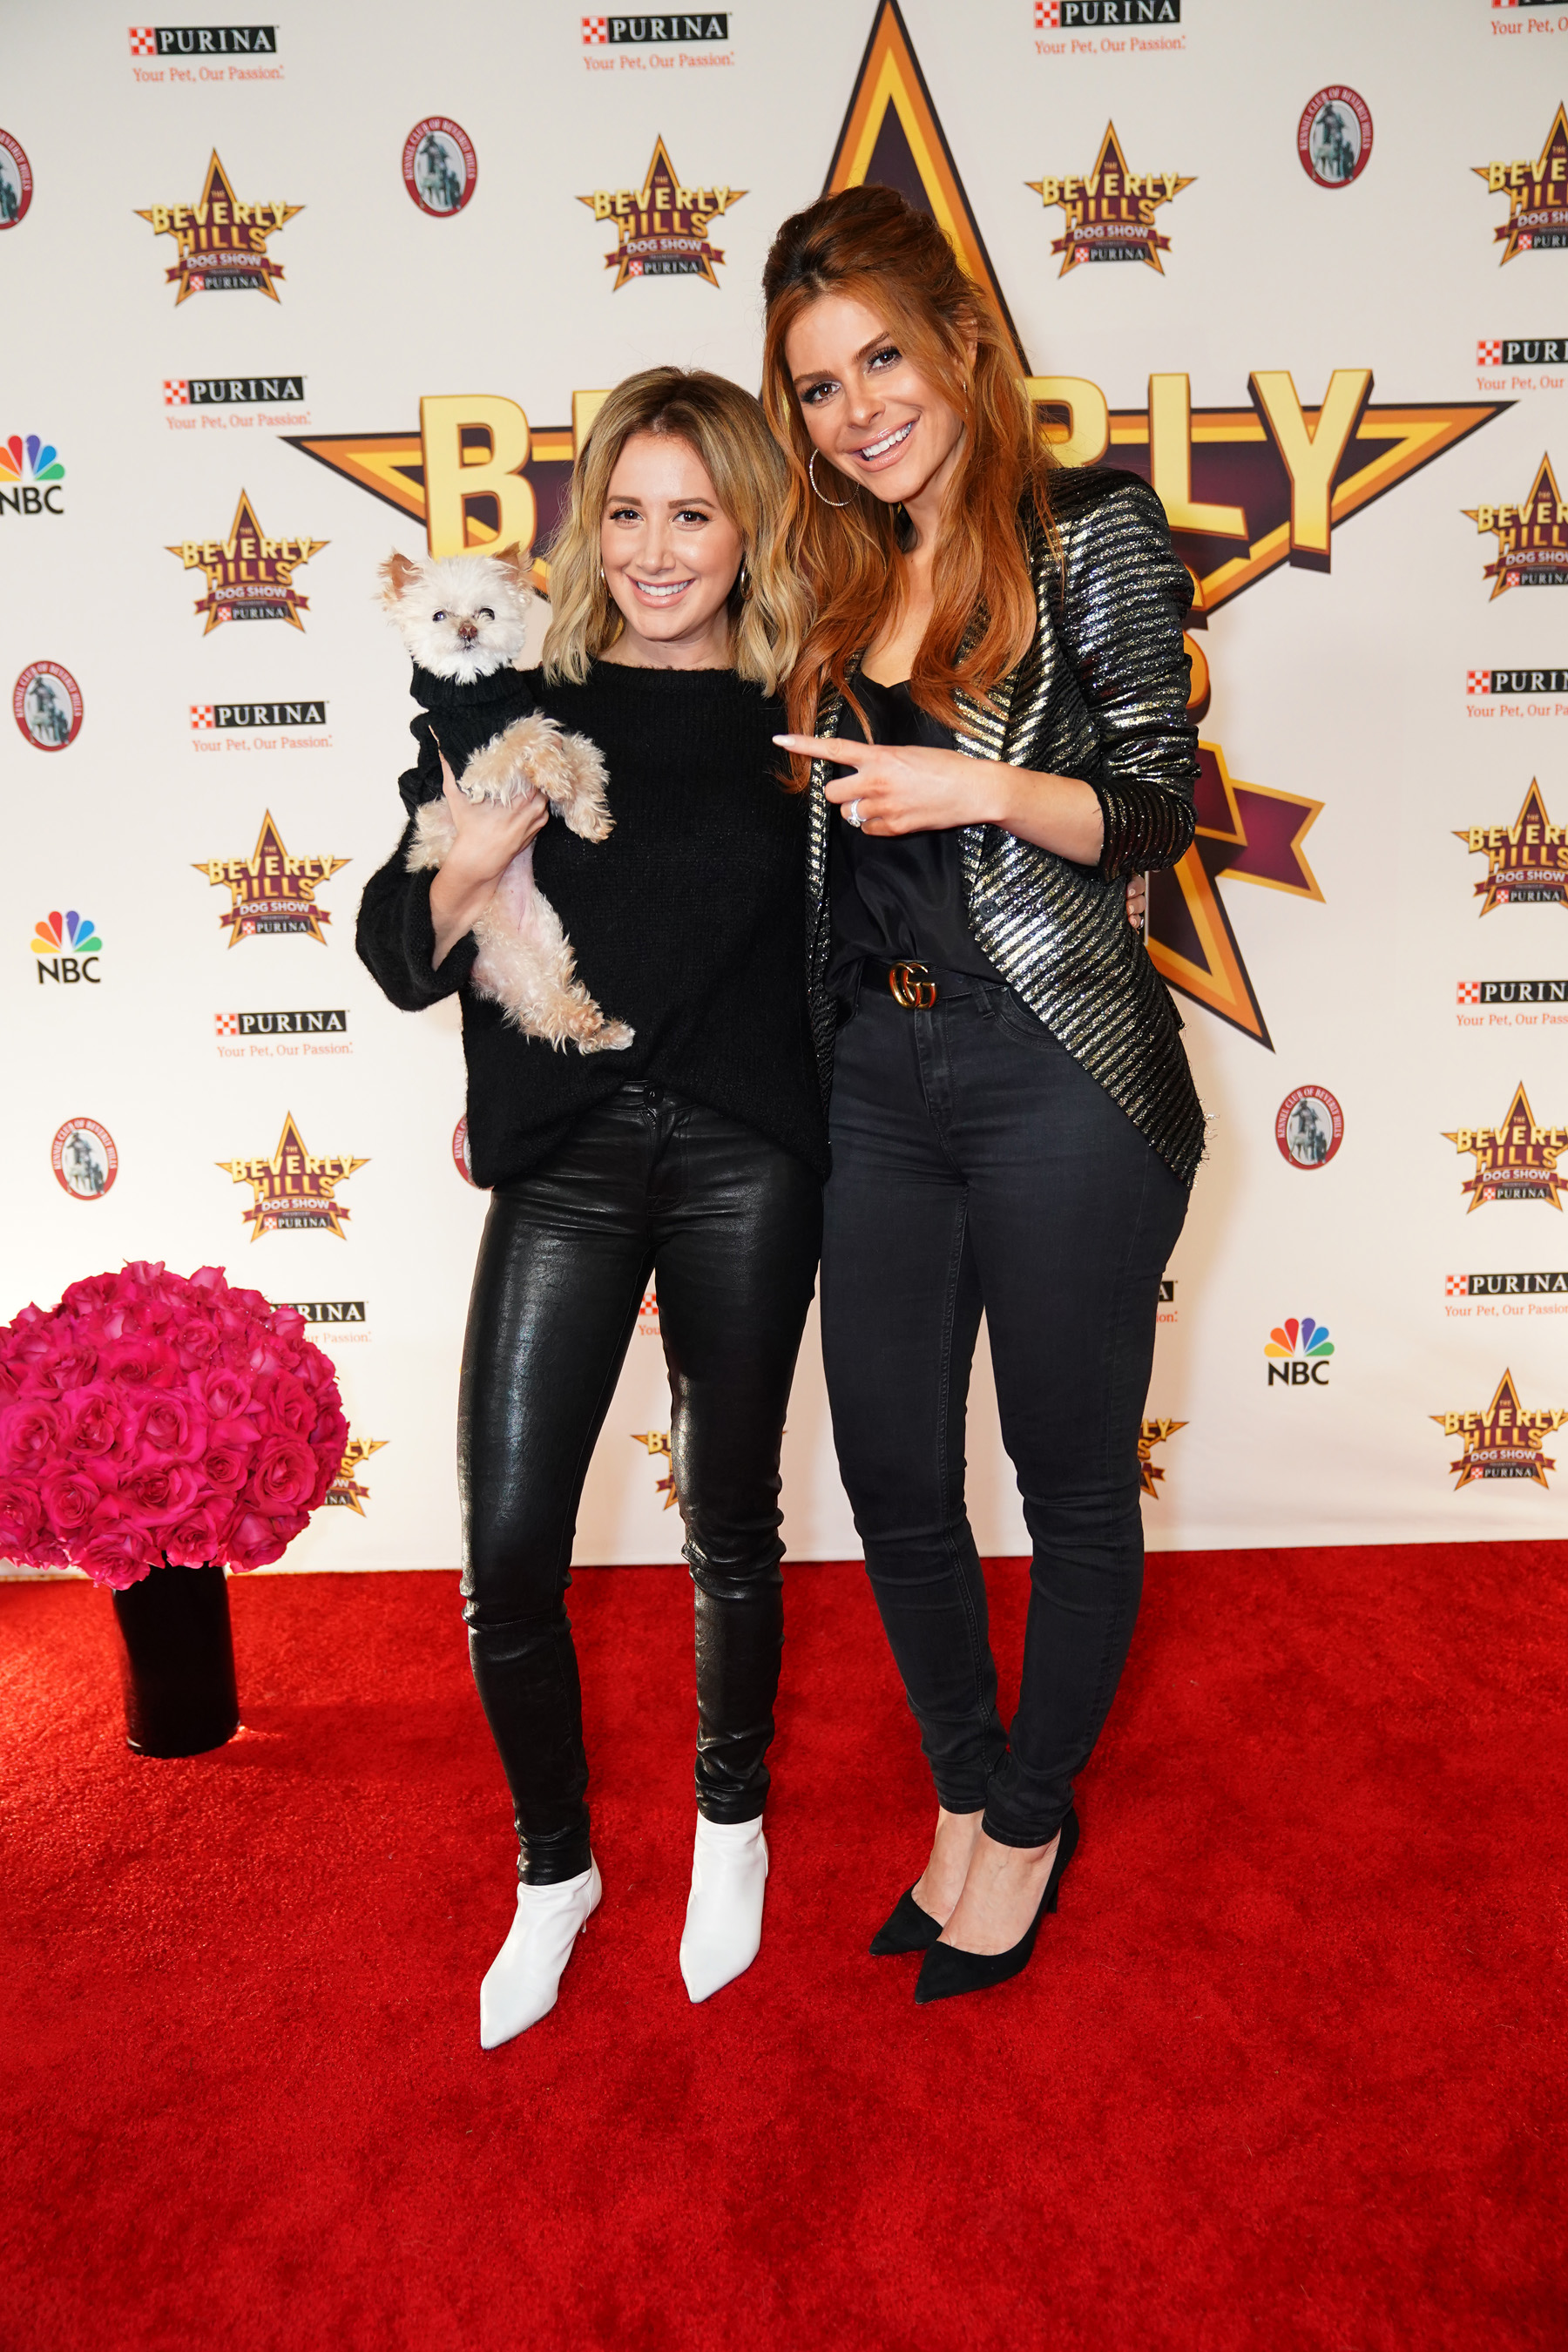 The Beverly Hills Dog Show is a rising family-friendly tradition that brings the stars of both Hollywood and the dog world together for an amazing night while crowning one dog as the 2019 champion.